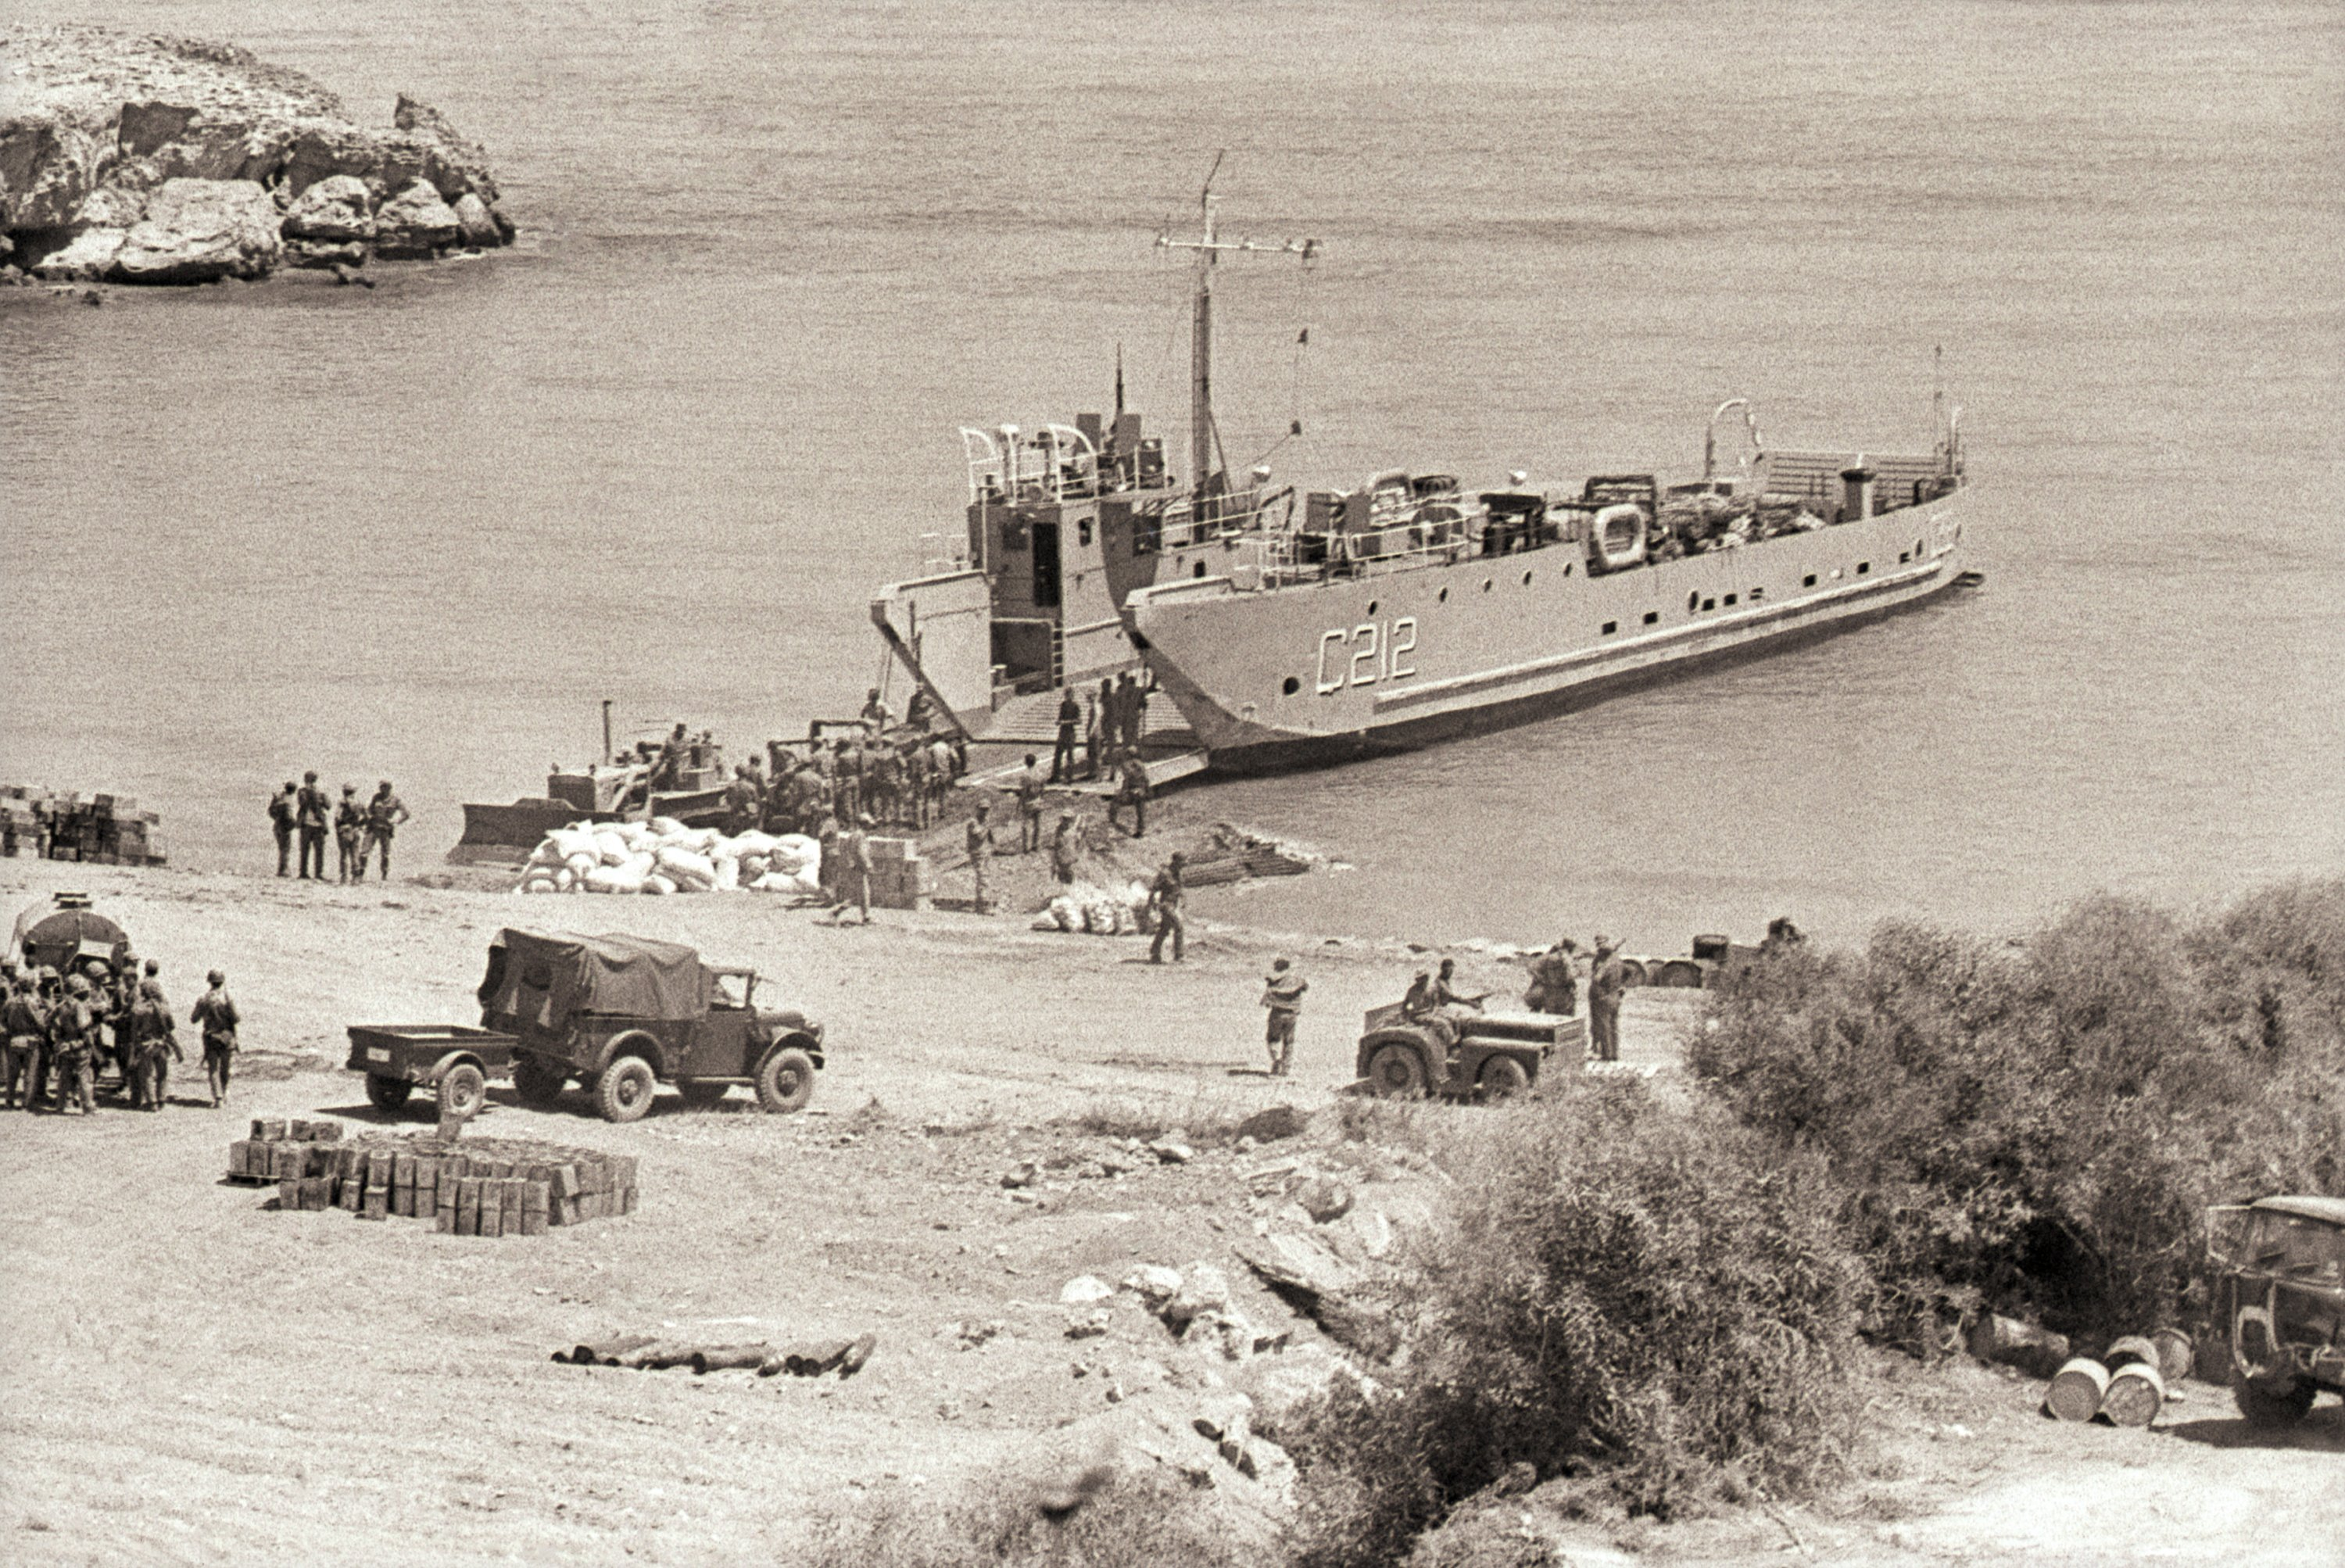 A Turkish navy landing craft unloads men and supplies for Turkey's 2nd army at a beachhead near Kyrenia, Cyprus (in what is now the Turkish Republic of Northern Cyprus), July 30, 1974. (Photo by Getty Images)